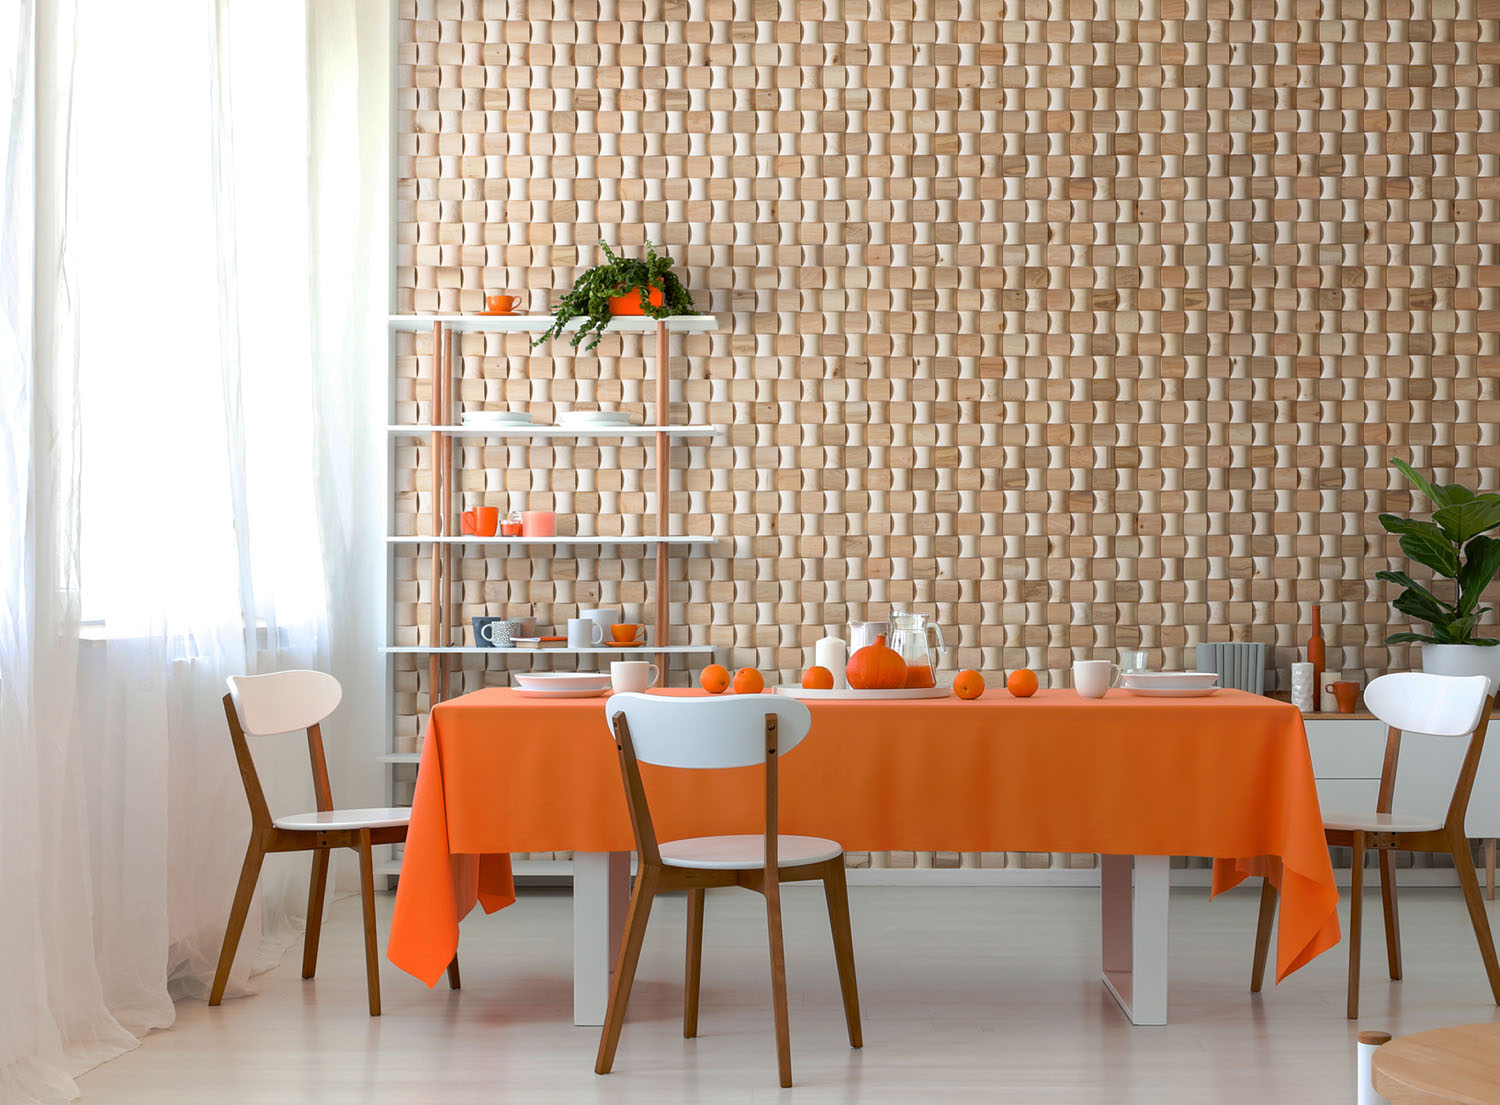 wall panels in interior orange accents